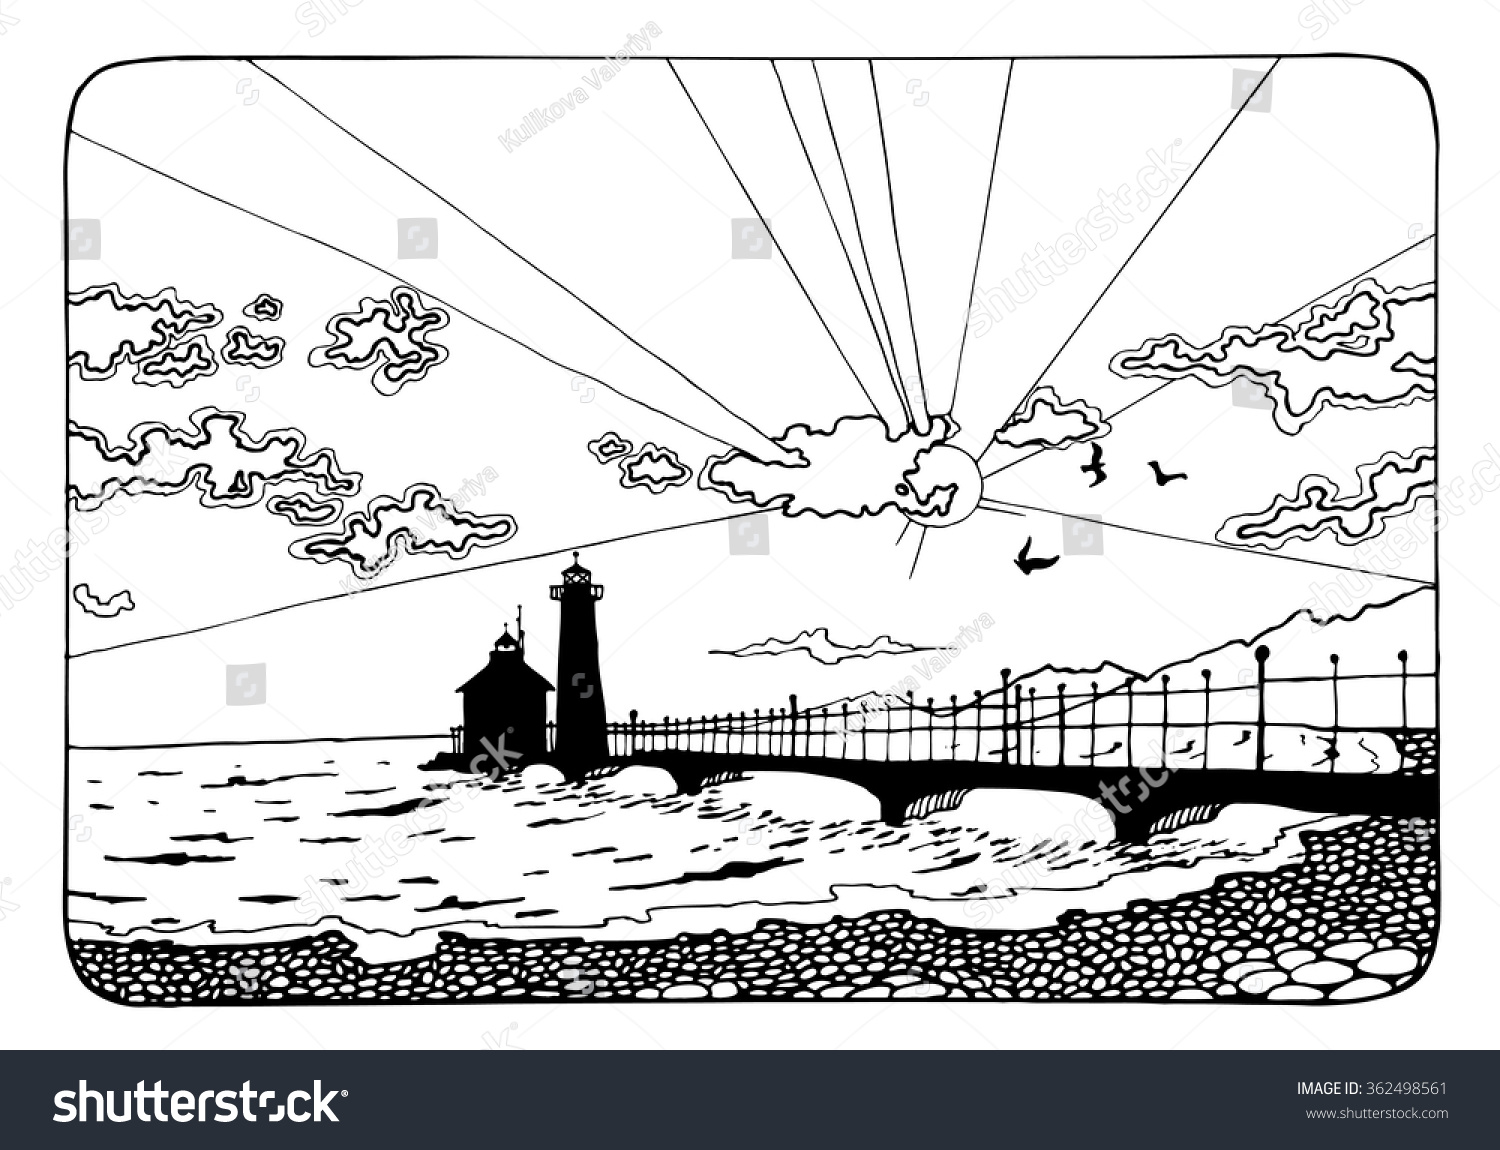 sunset coloring pages for adults - sunset lighthouse coloring page adults antistress stock